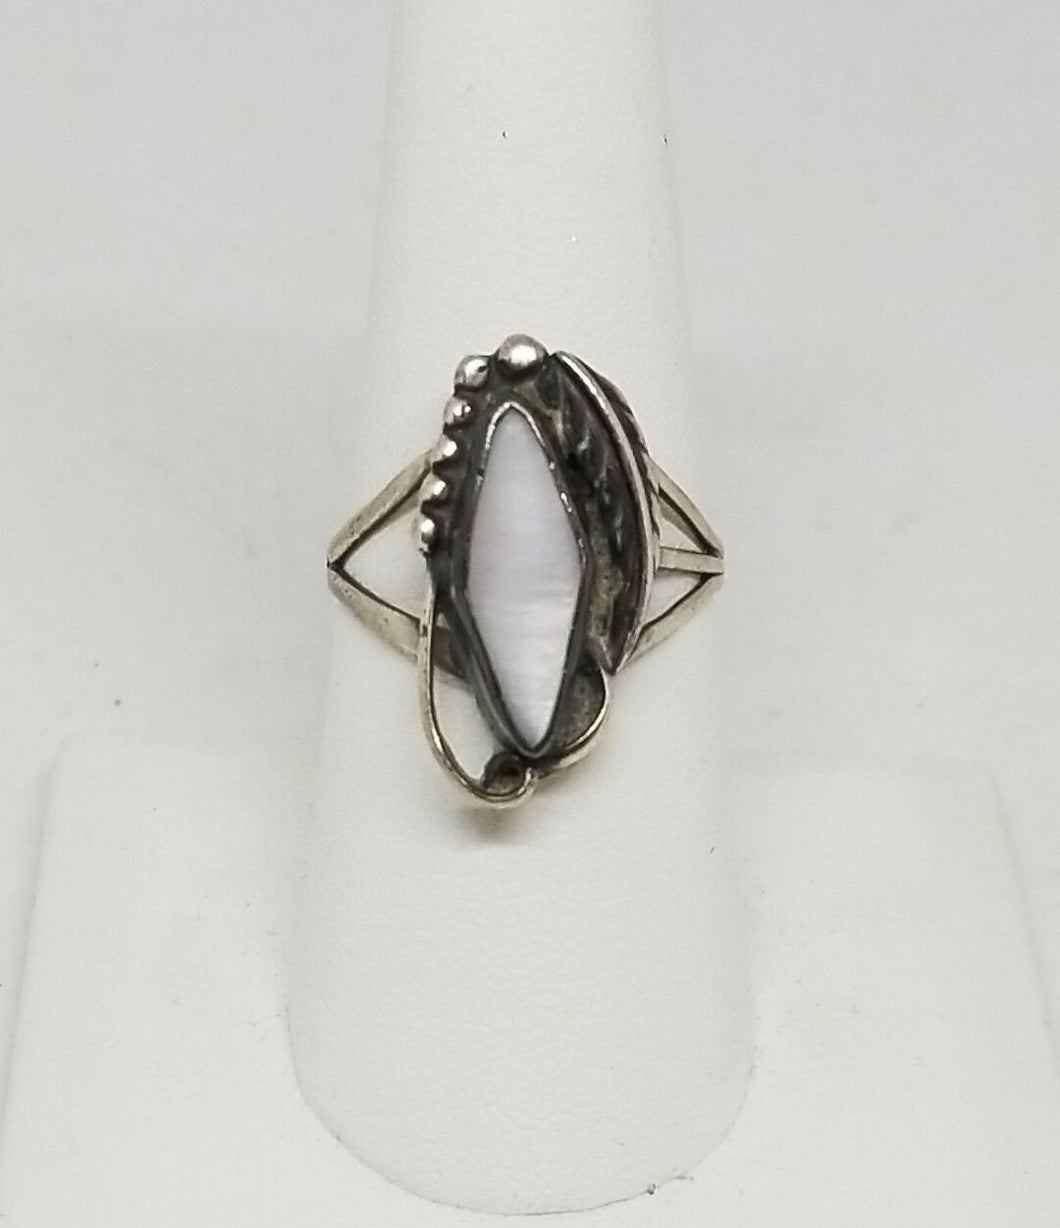 Vintage Navajo Old Pawn Sterling Silver Mother of Pearl Ring Size 7.25